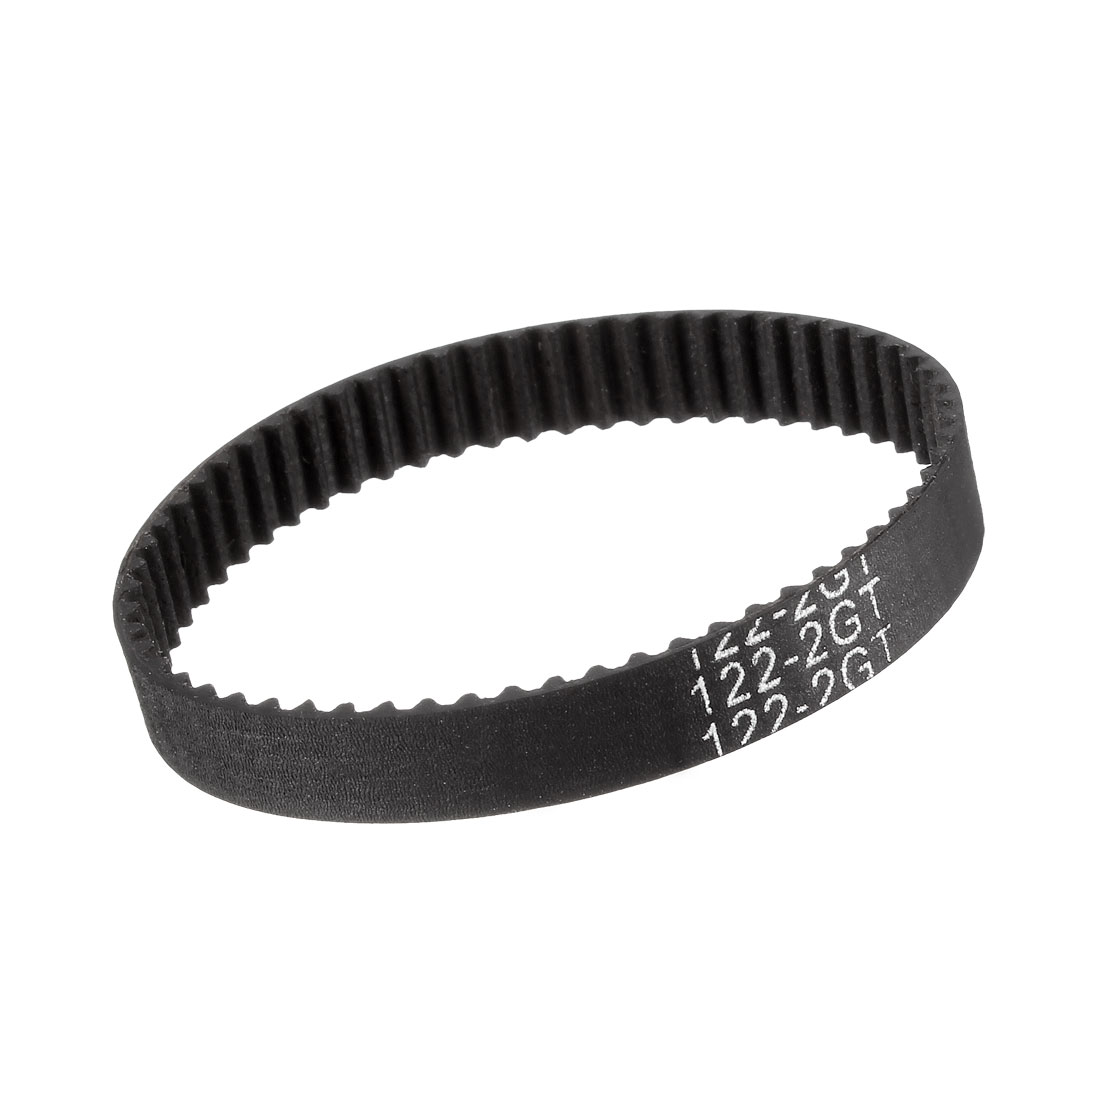 GT2 Timing Belt 122mm Closed Fit Synchronous Wheel for 3D Printer